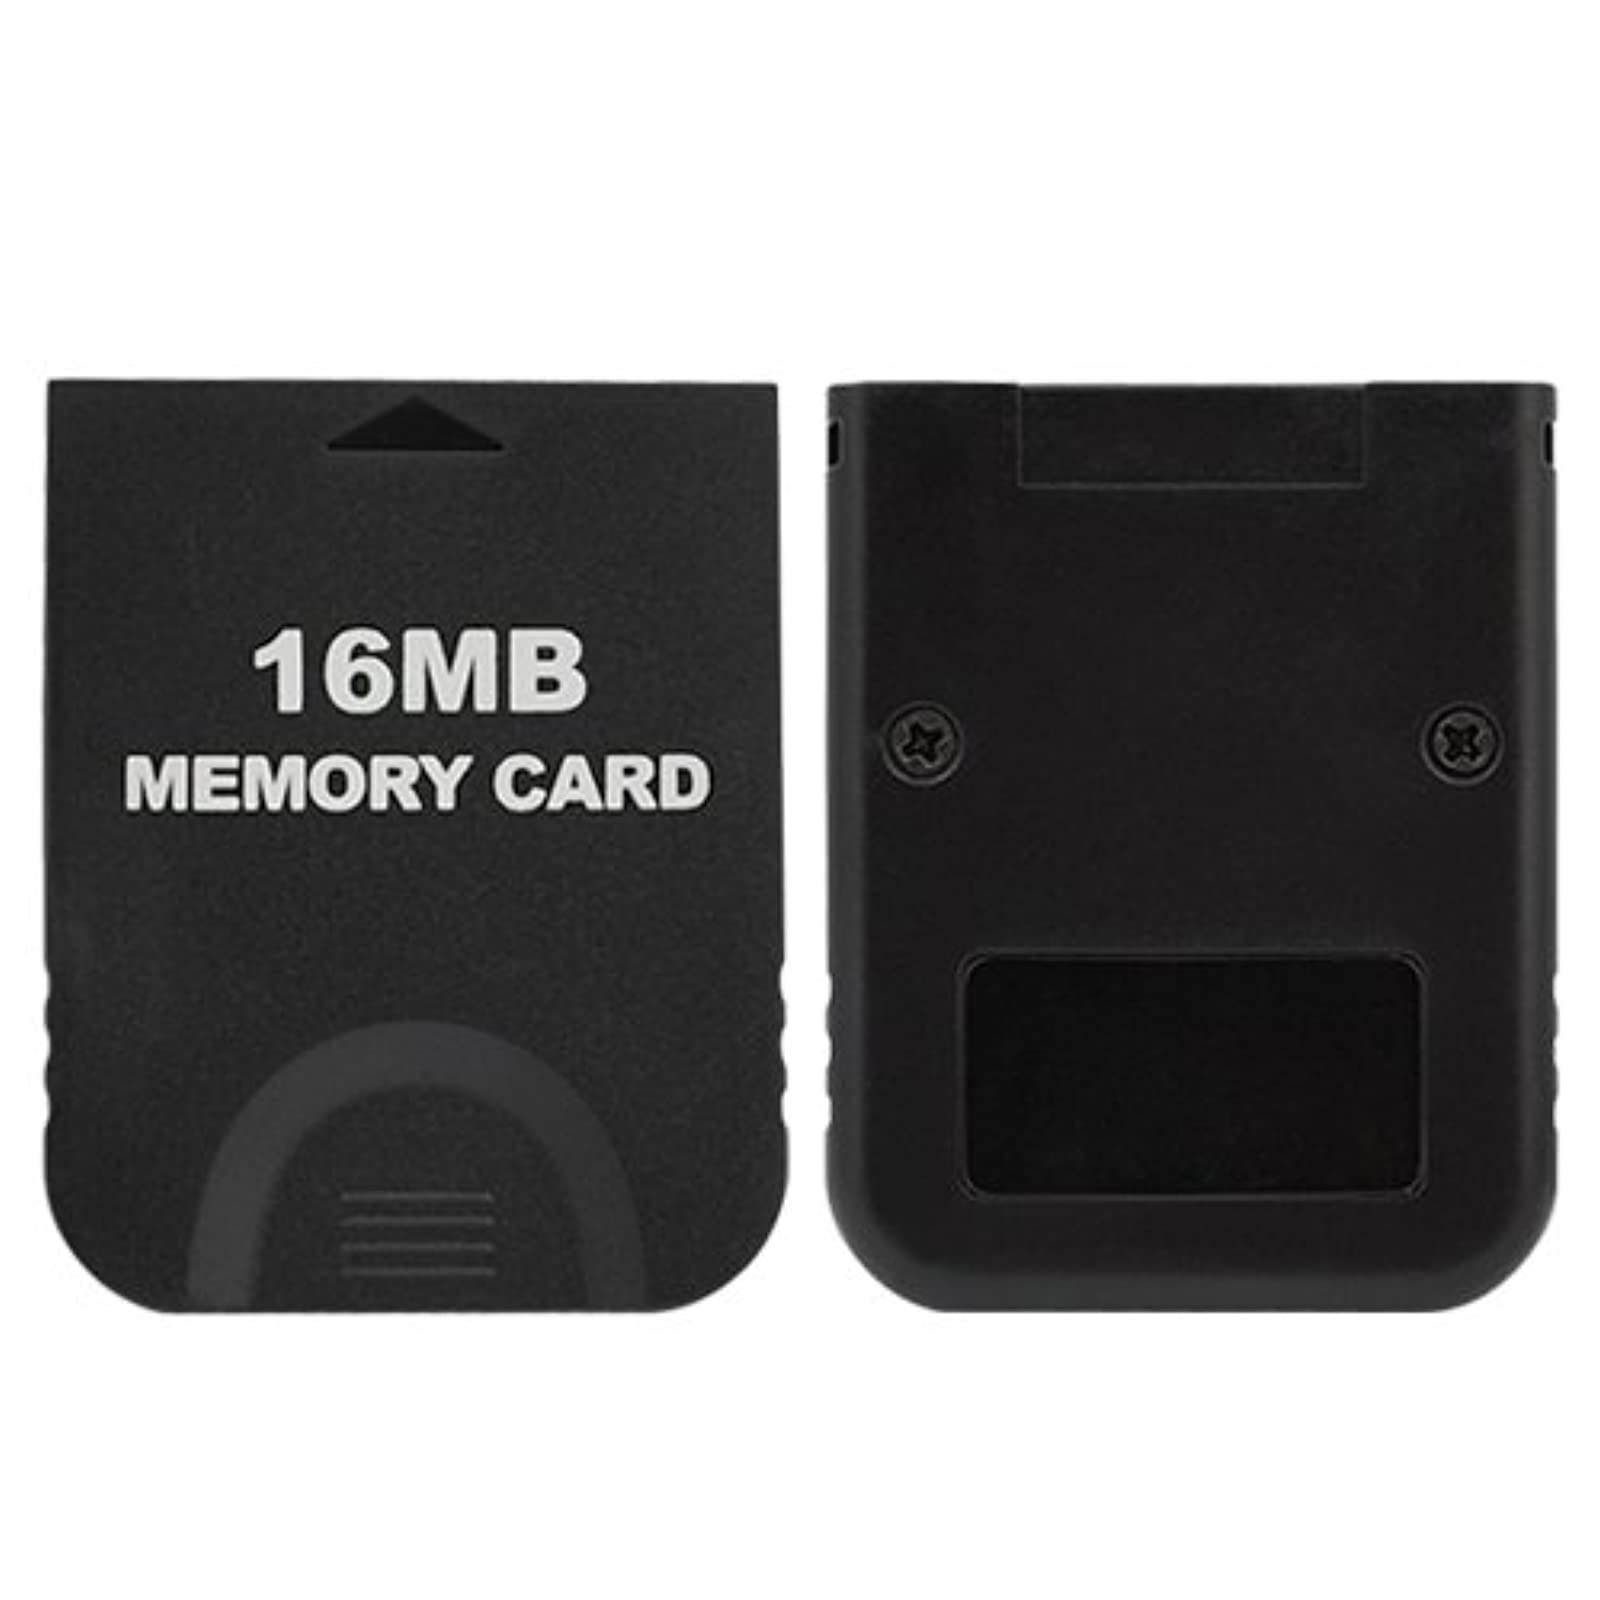 Black 16MB Memory Card For Ninendo Wii / For GameCube Expansion